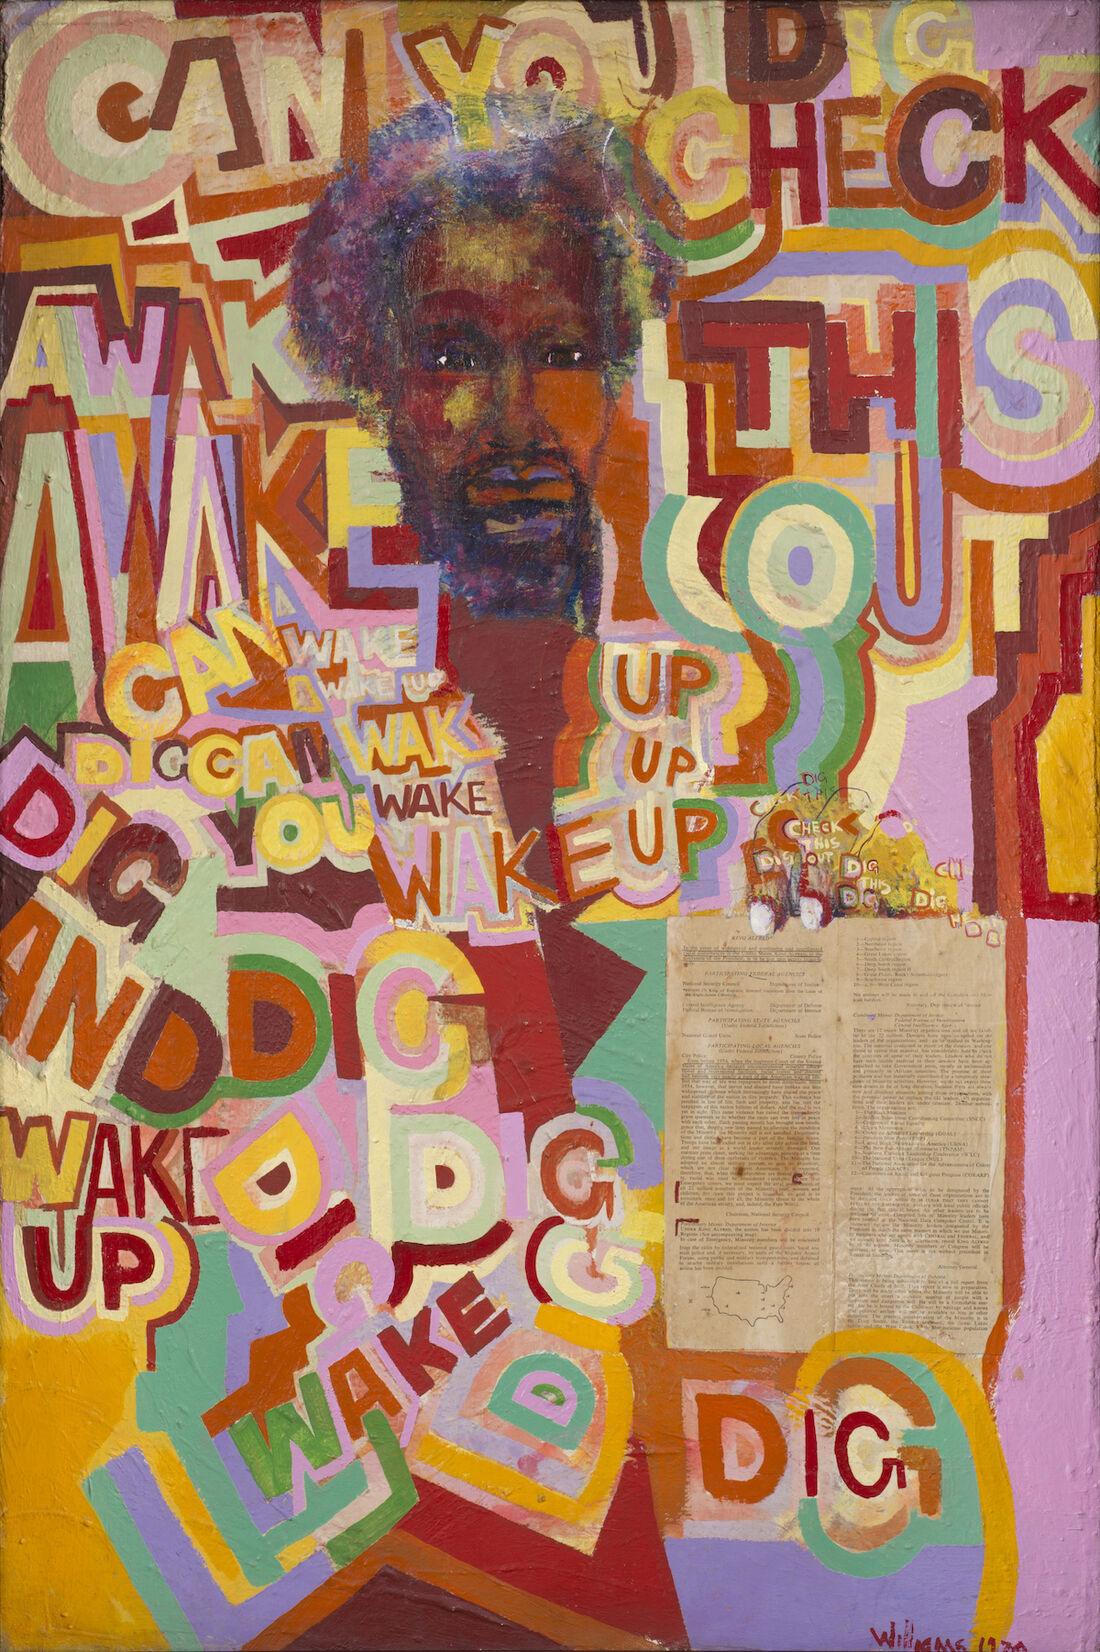 Work by Gerald Williams, founding member of AfriCOBRA. Image courtesy of the artist and Kavi Gupta Gallery, Chicago.